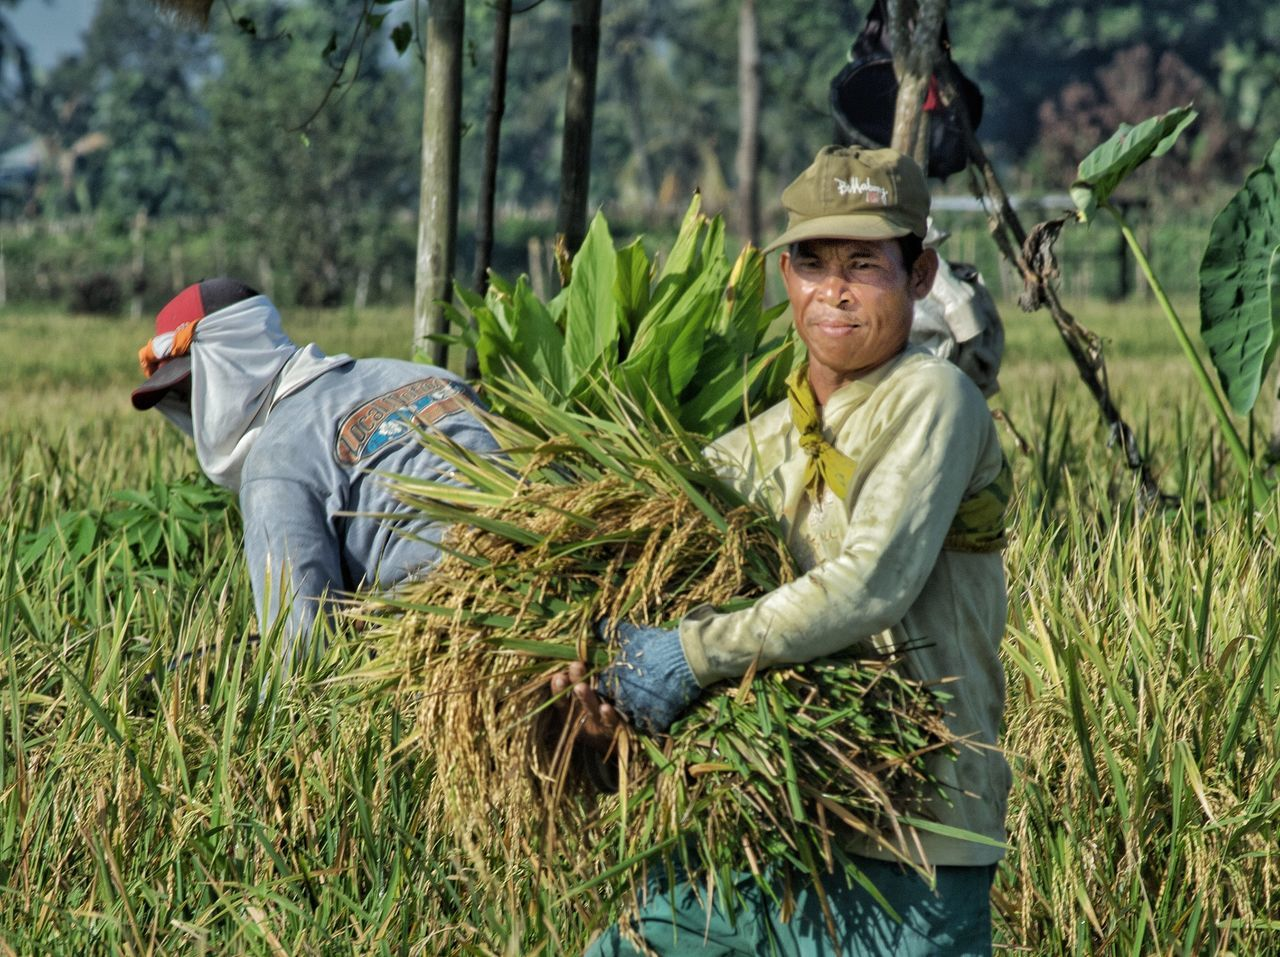 agriculture, one man only, only men, field, crop, farm, mature adult, adults only, one person, farmer, growth, one mature man only, mature men, adult, outdoors, working, men, portrait, looking at camera, rural scene, day, nature, occupation, people, farm worker, food, smiling